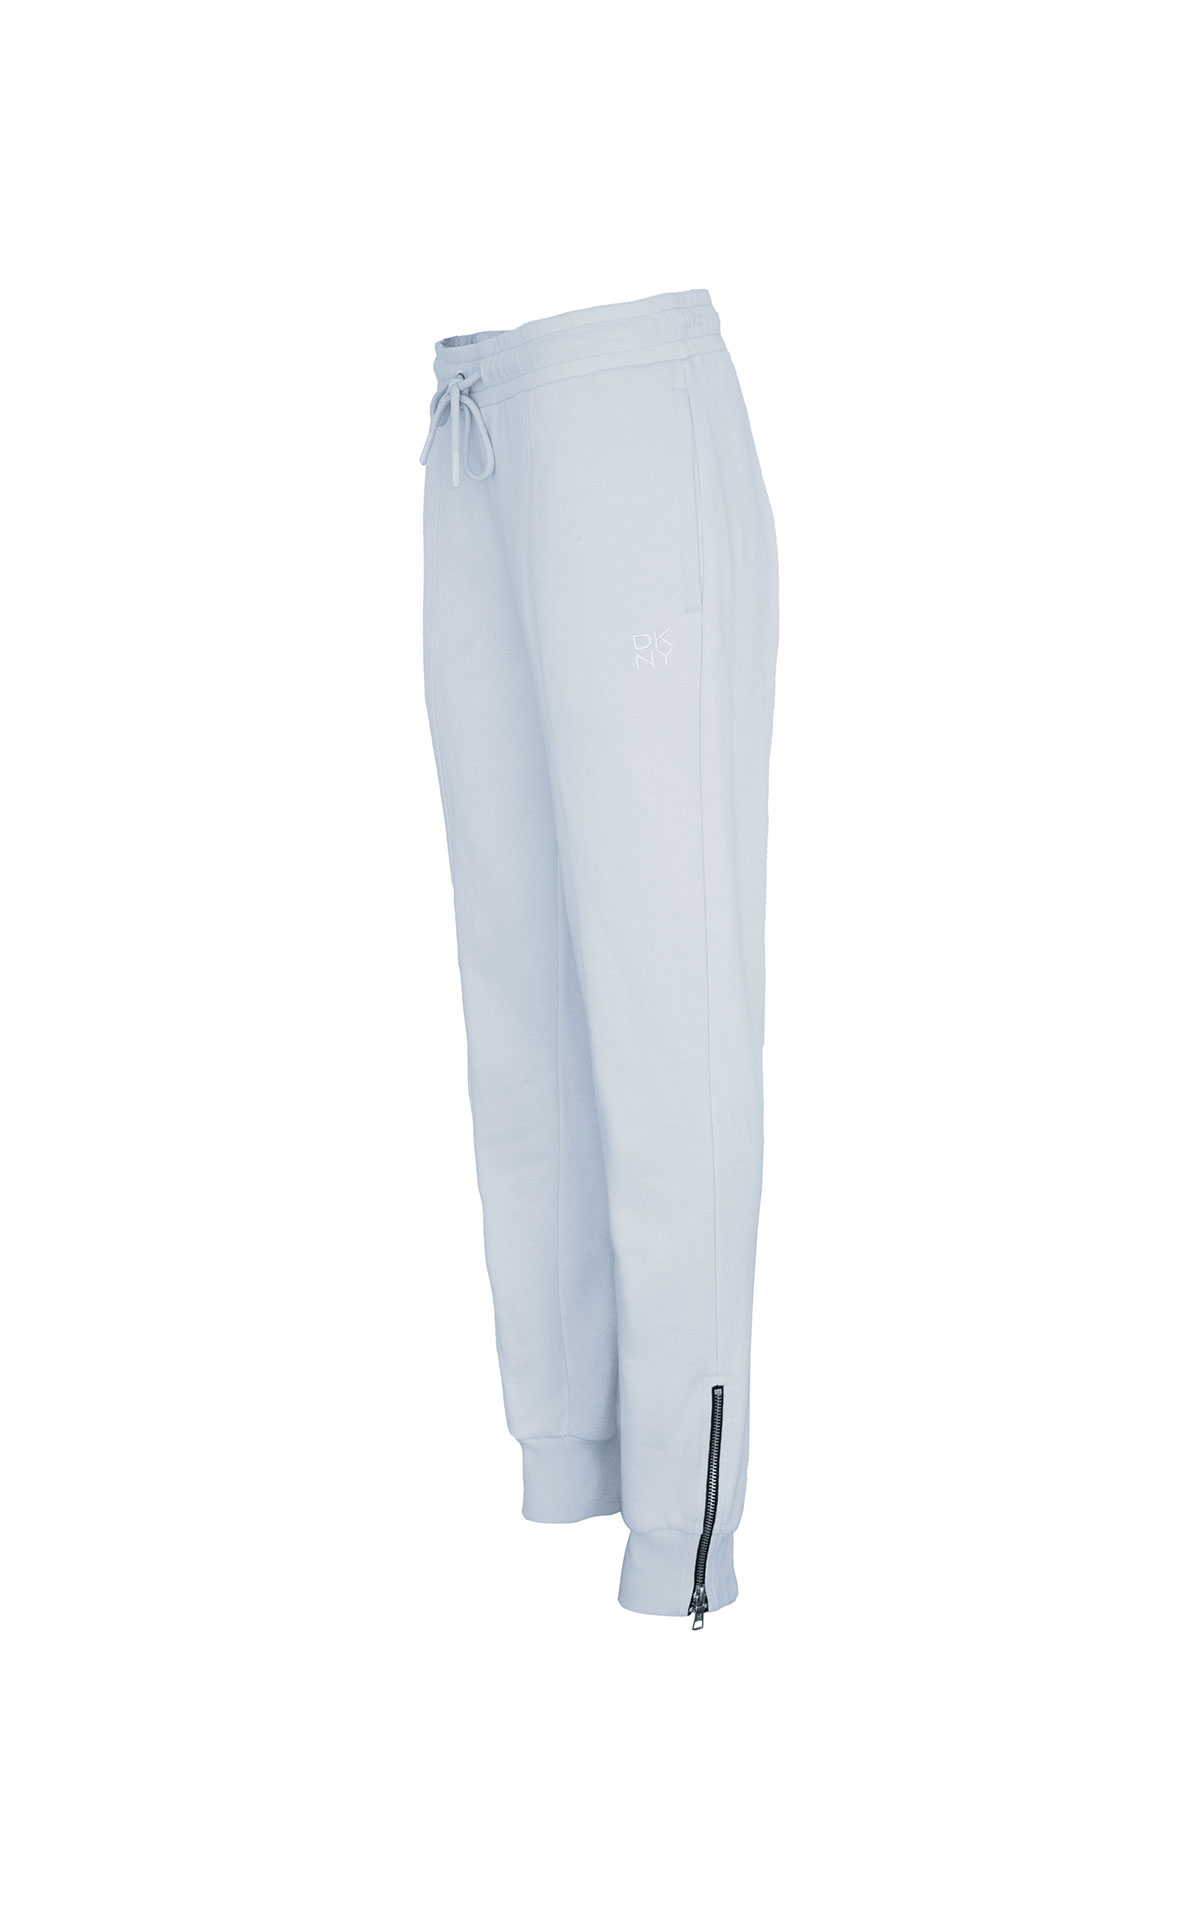 DKNY Jogger with Zipper at Cuffs from Bicester Village